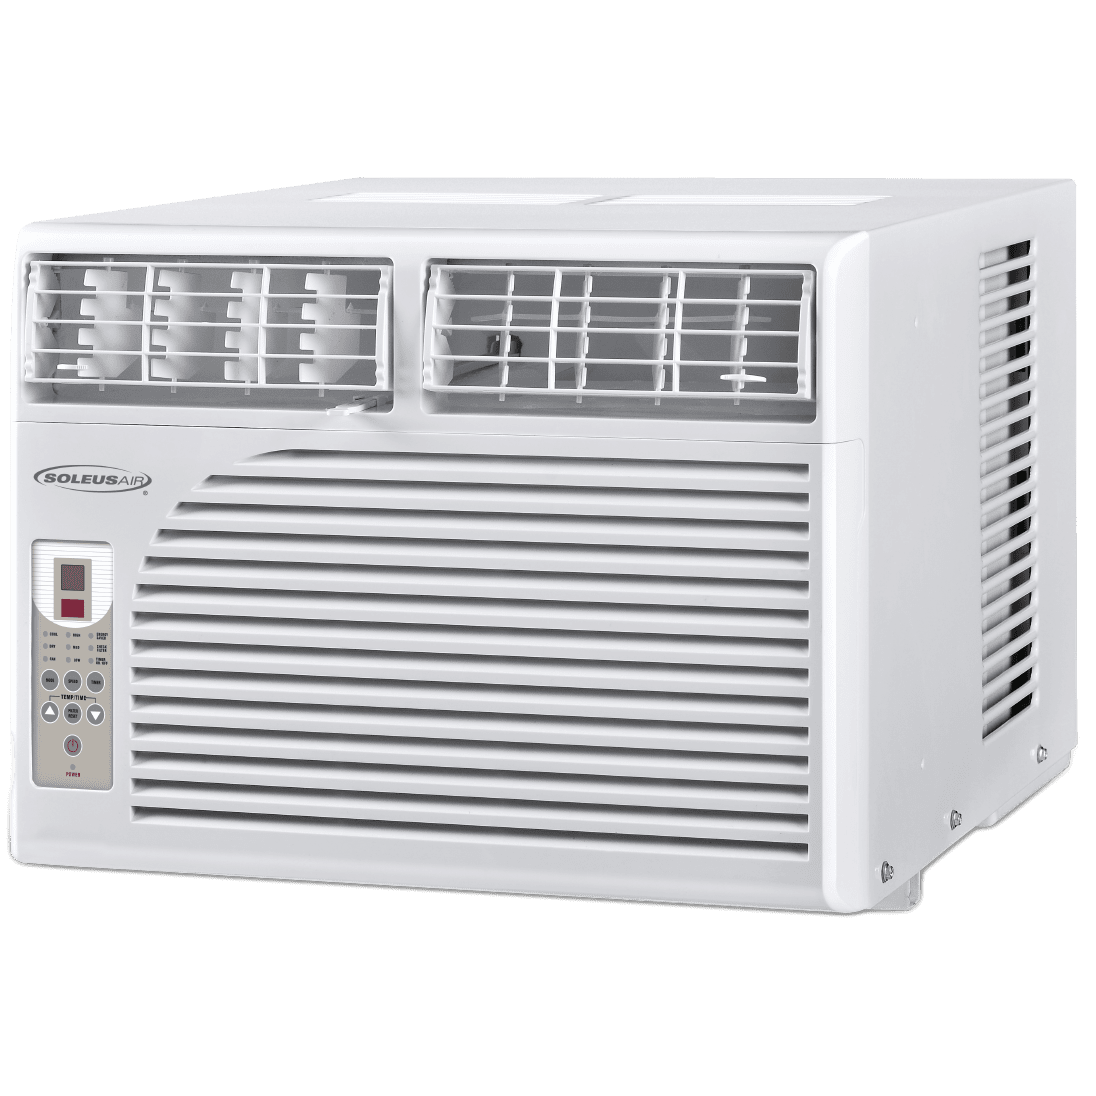 Soleus Air HCC-W08ES-A1 8,000 BTU Window Air Conditioner so3785